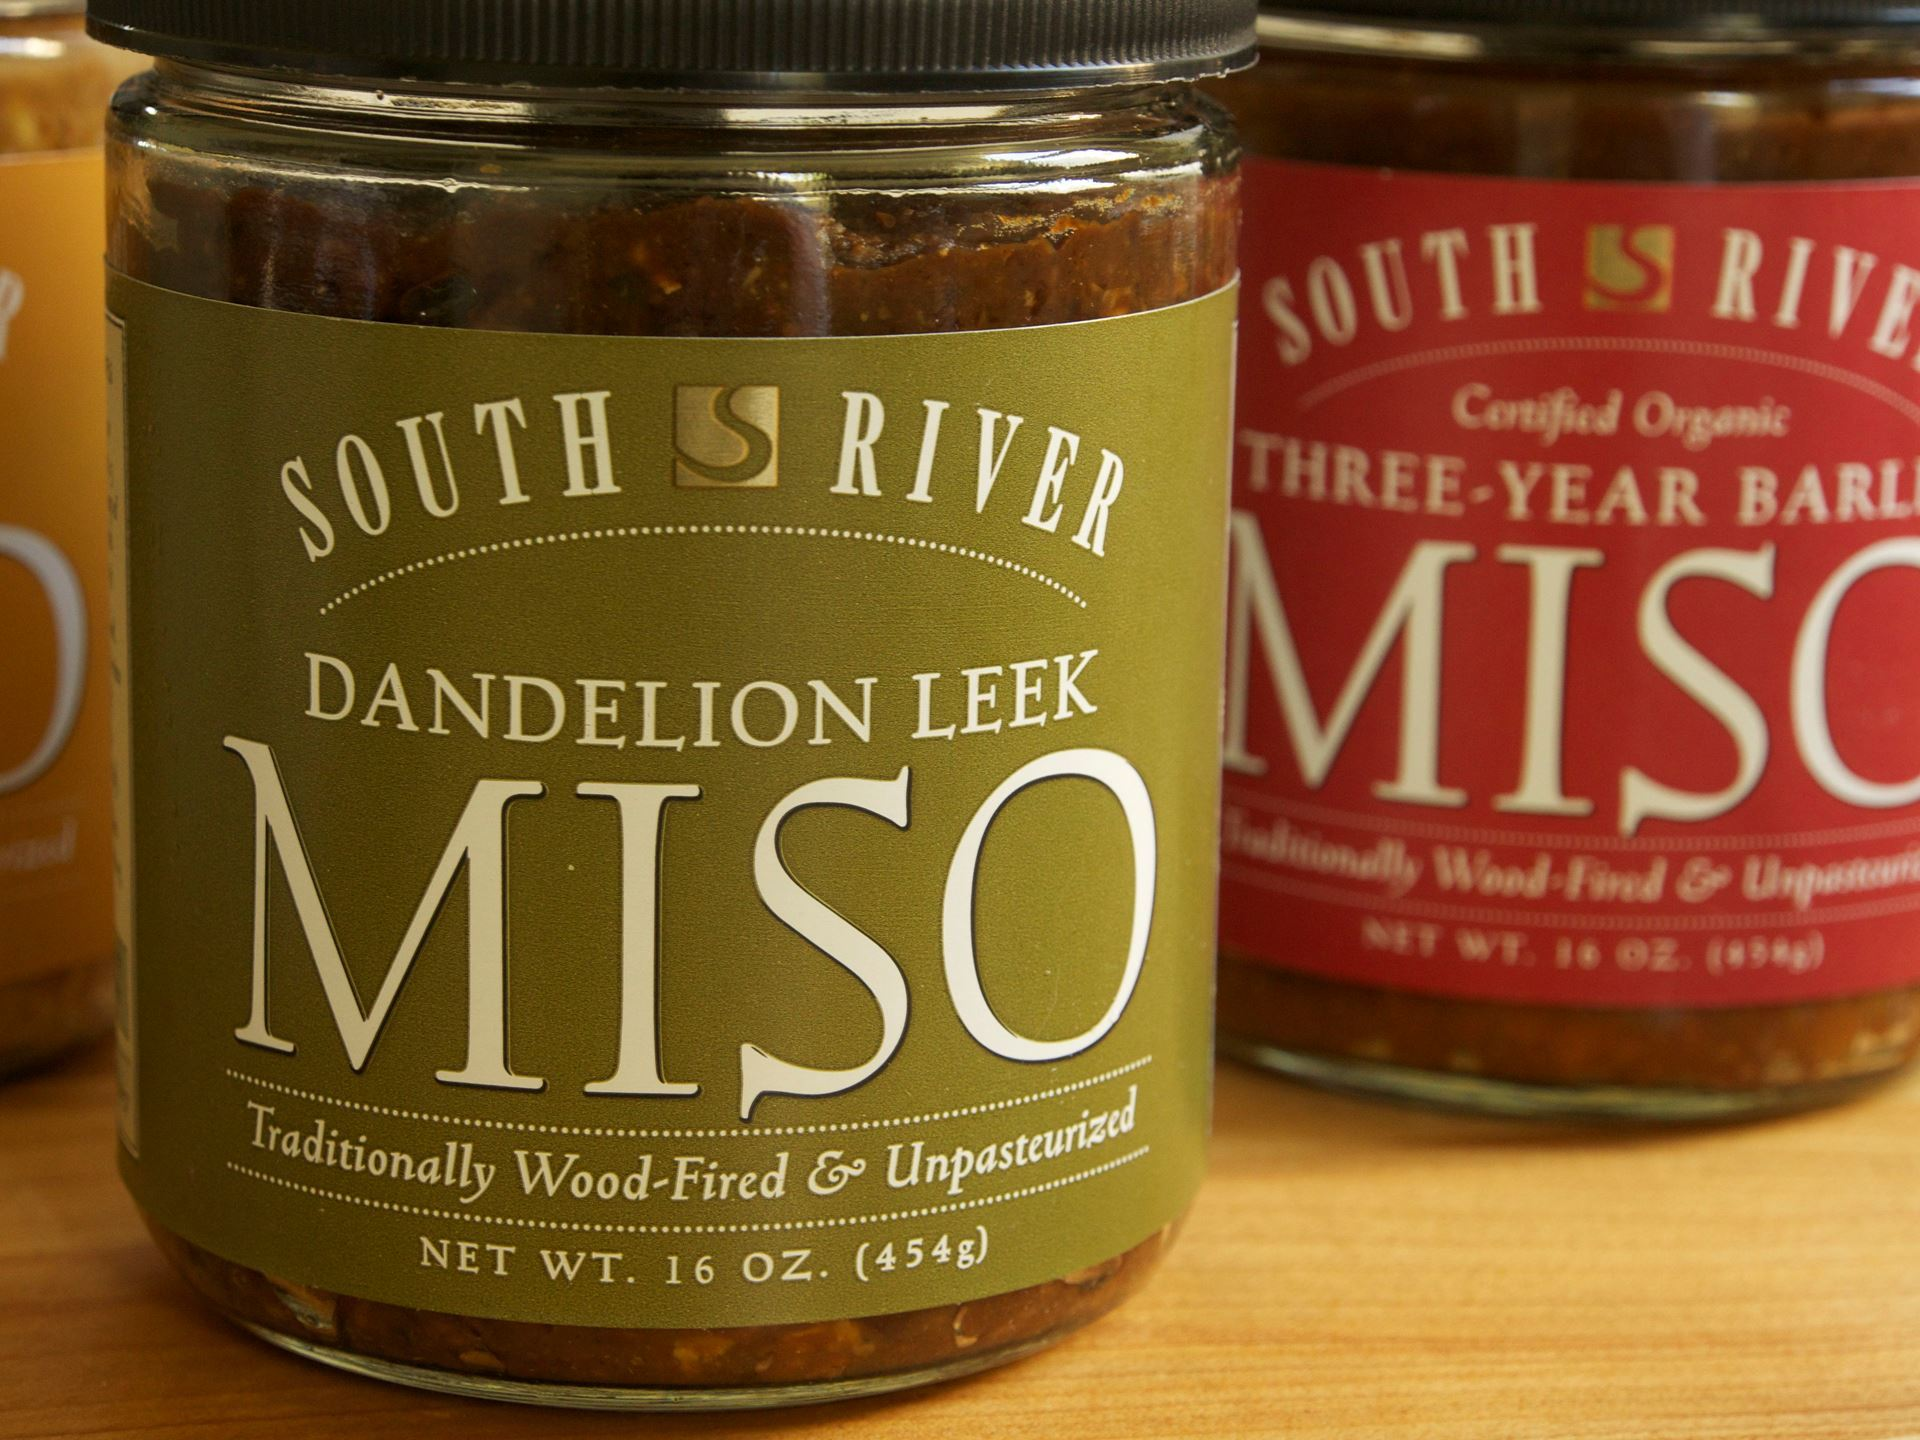 Picture of South River Dandelion Leek Miso